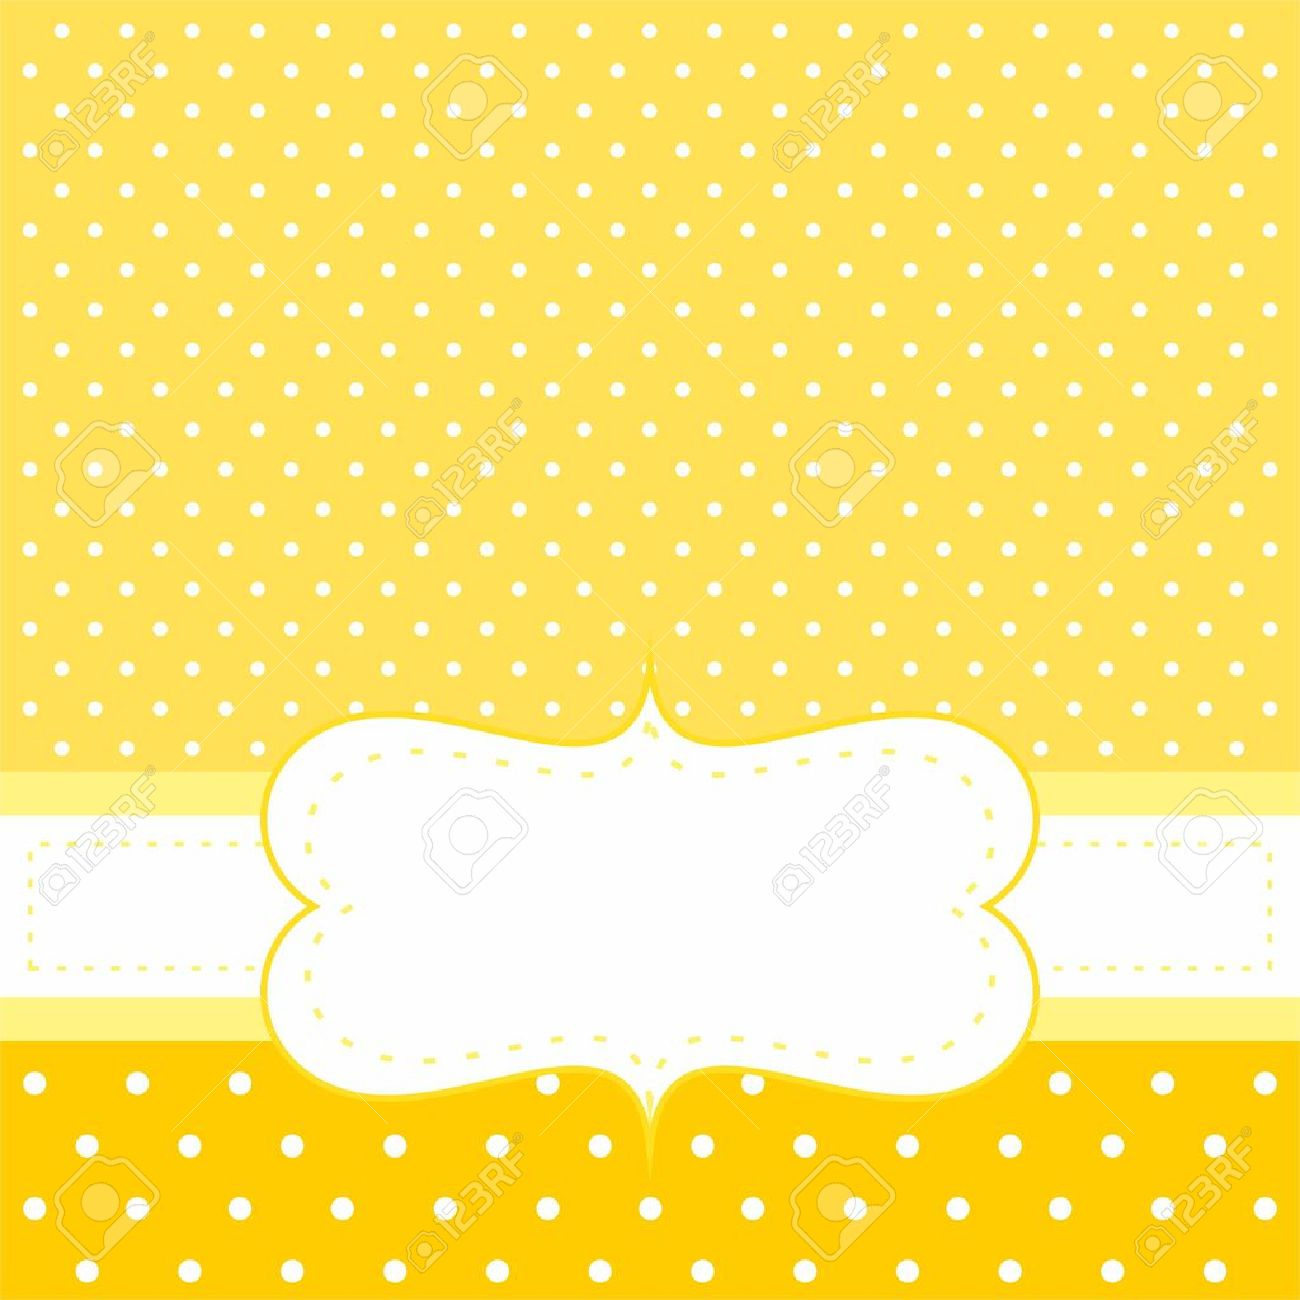 sweet invitation or card with white polka dots on yellow cute background with white space to